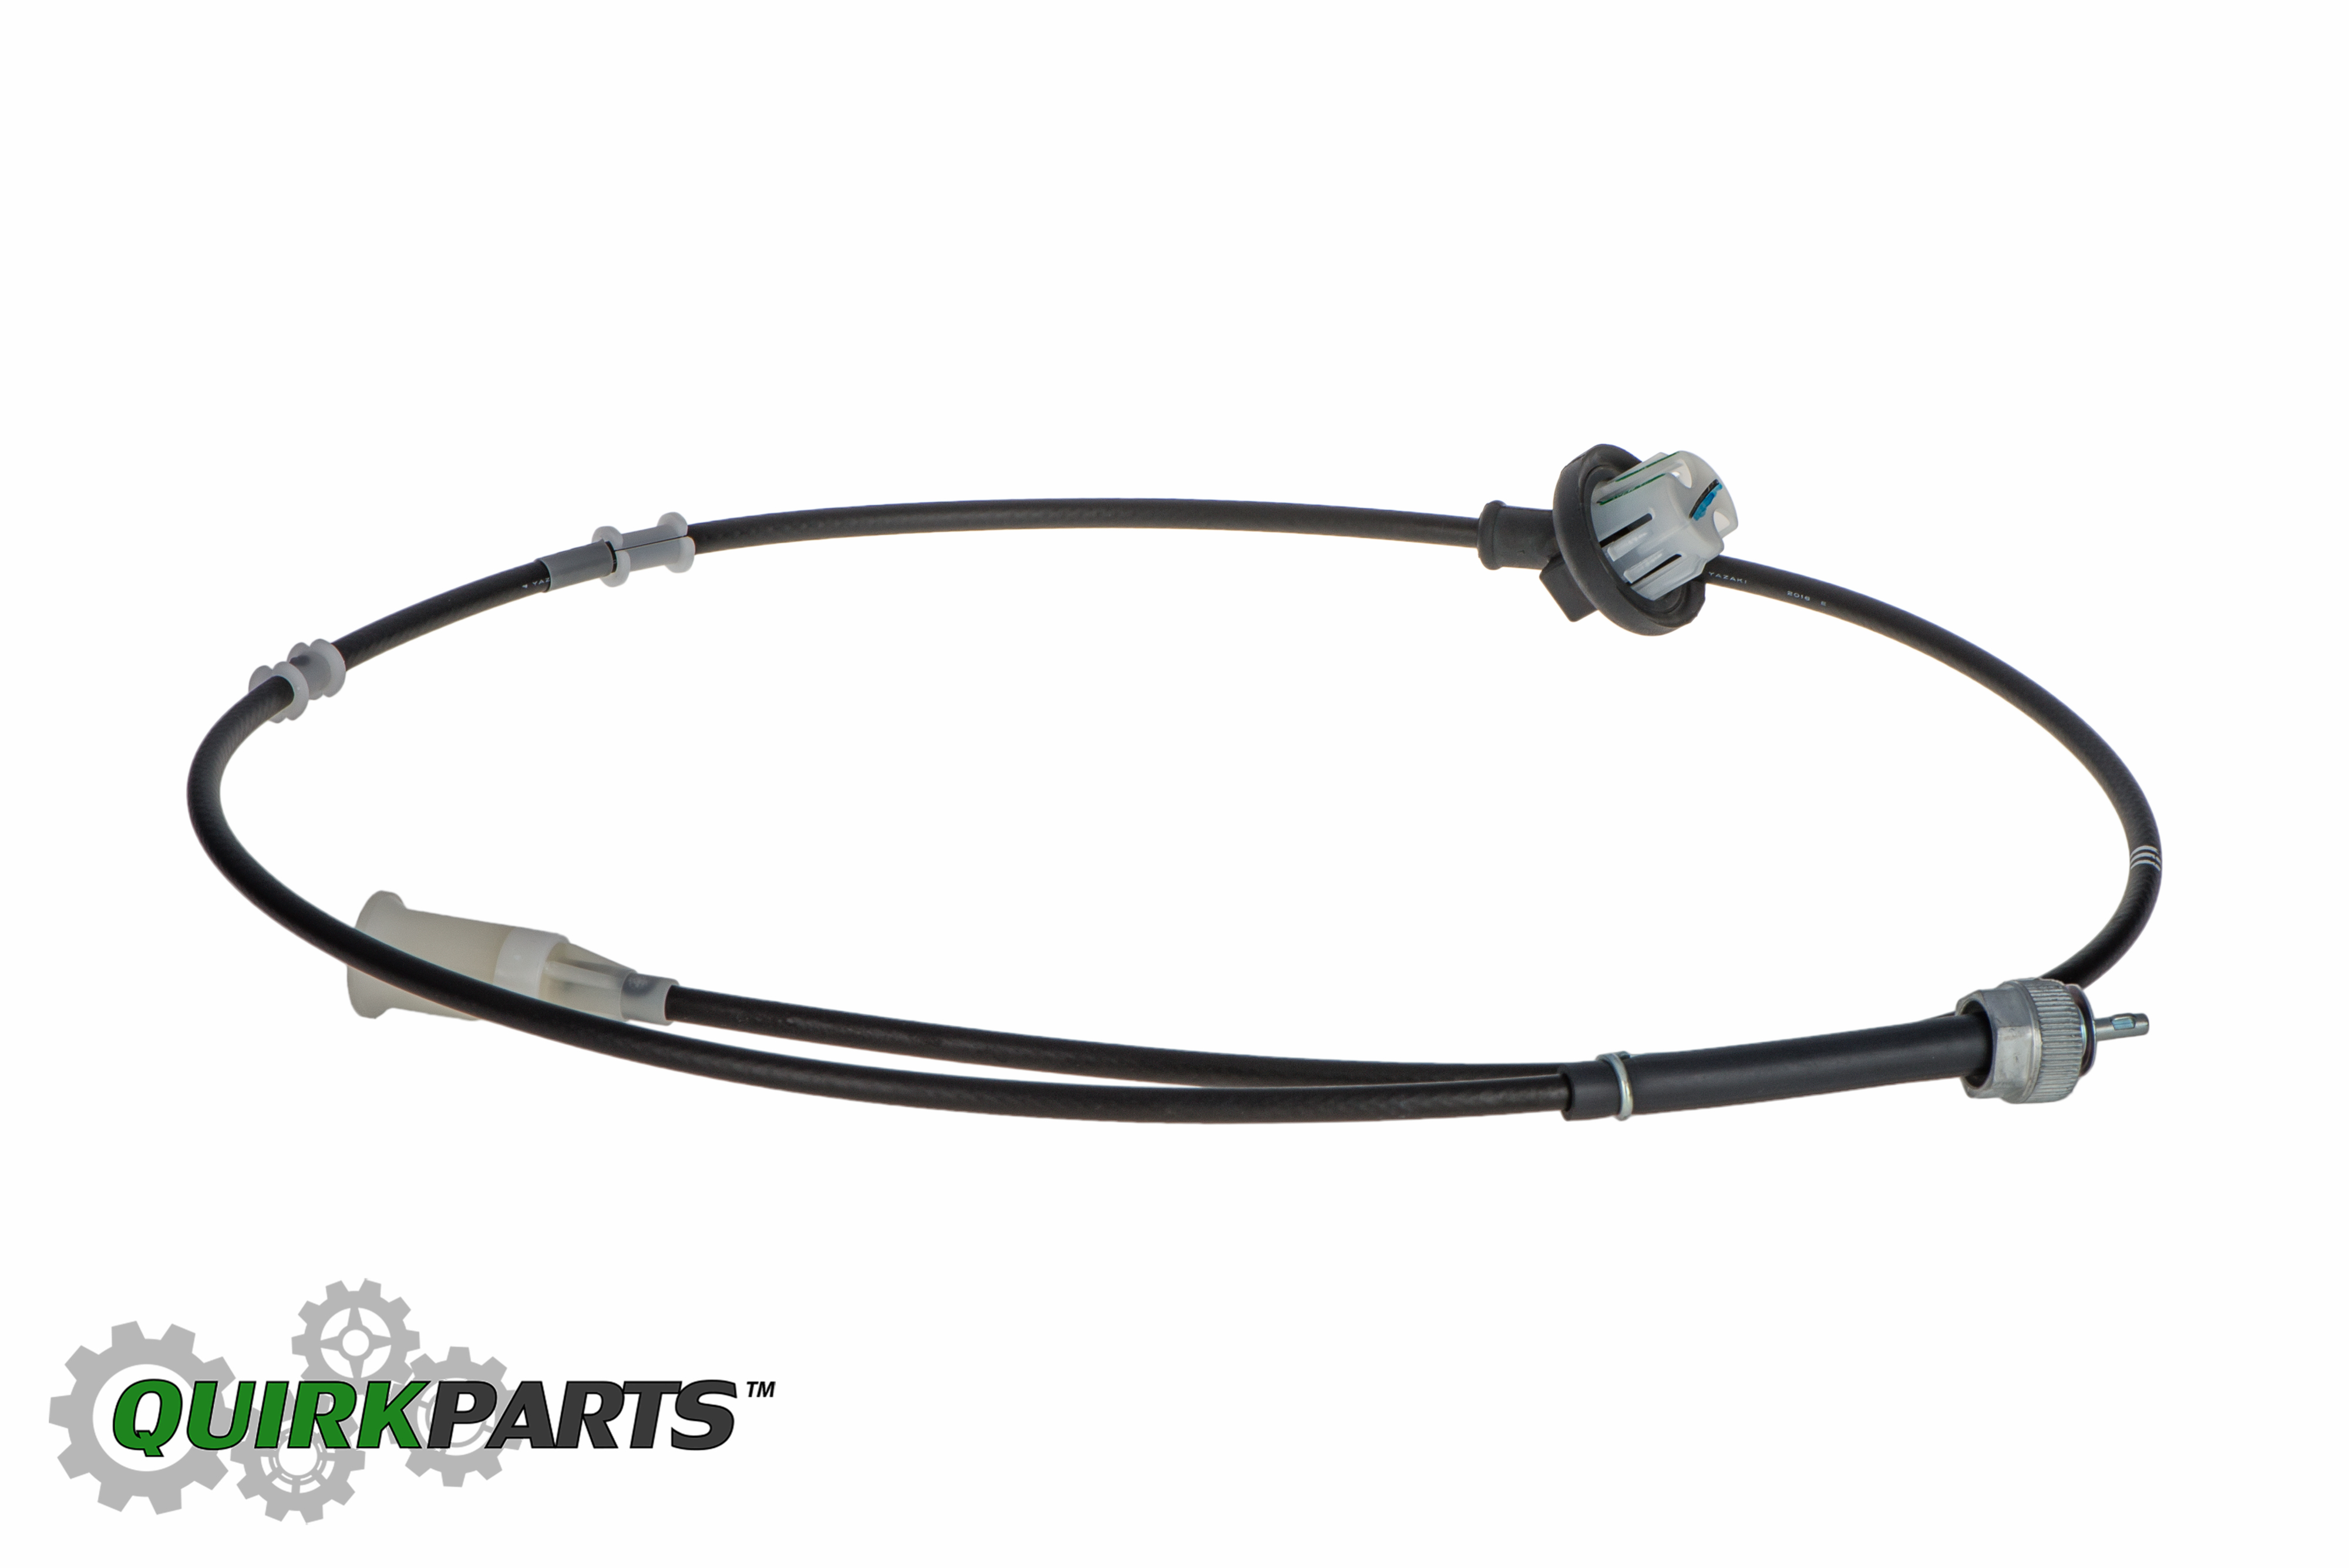 1990-1997 Mazda Miata Speedometer Cable Manual